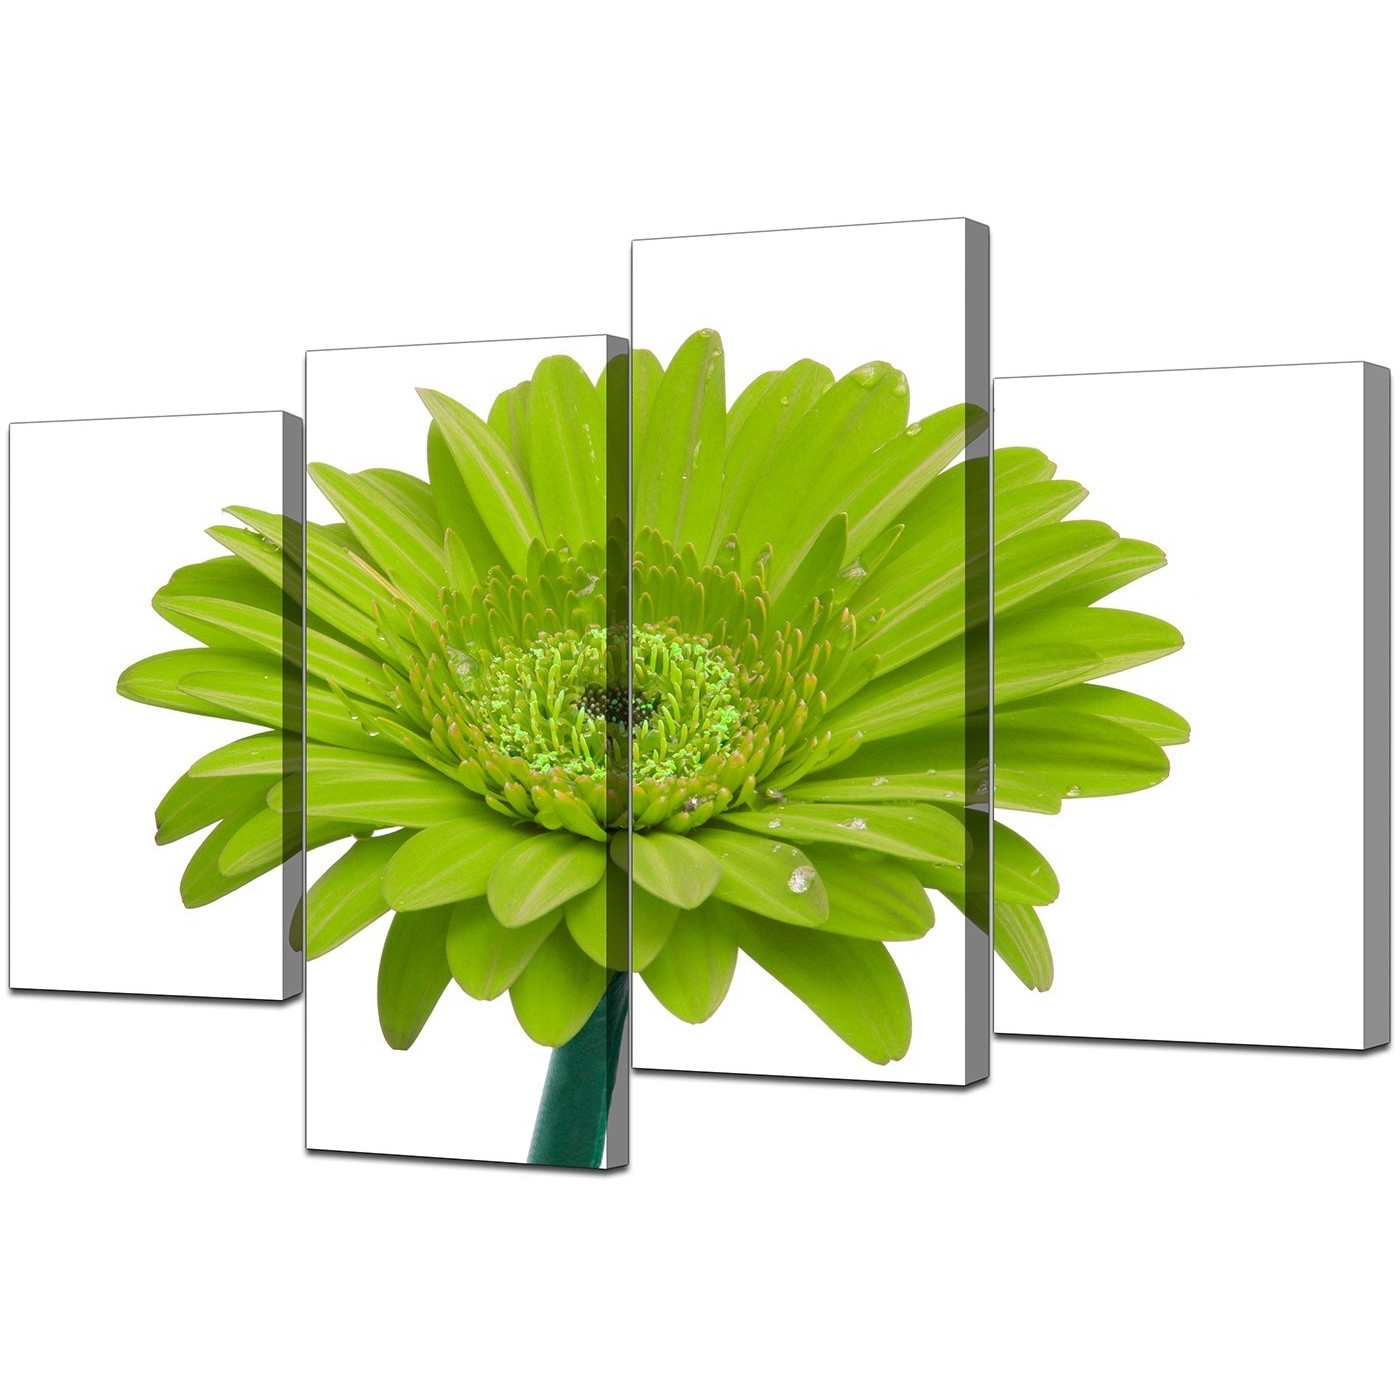 Green Wall Art Regarding Recent Canvas Wall Art Of Flower In Lime Green For Your Living Room (View 9 of 15)